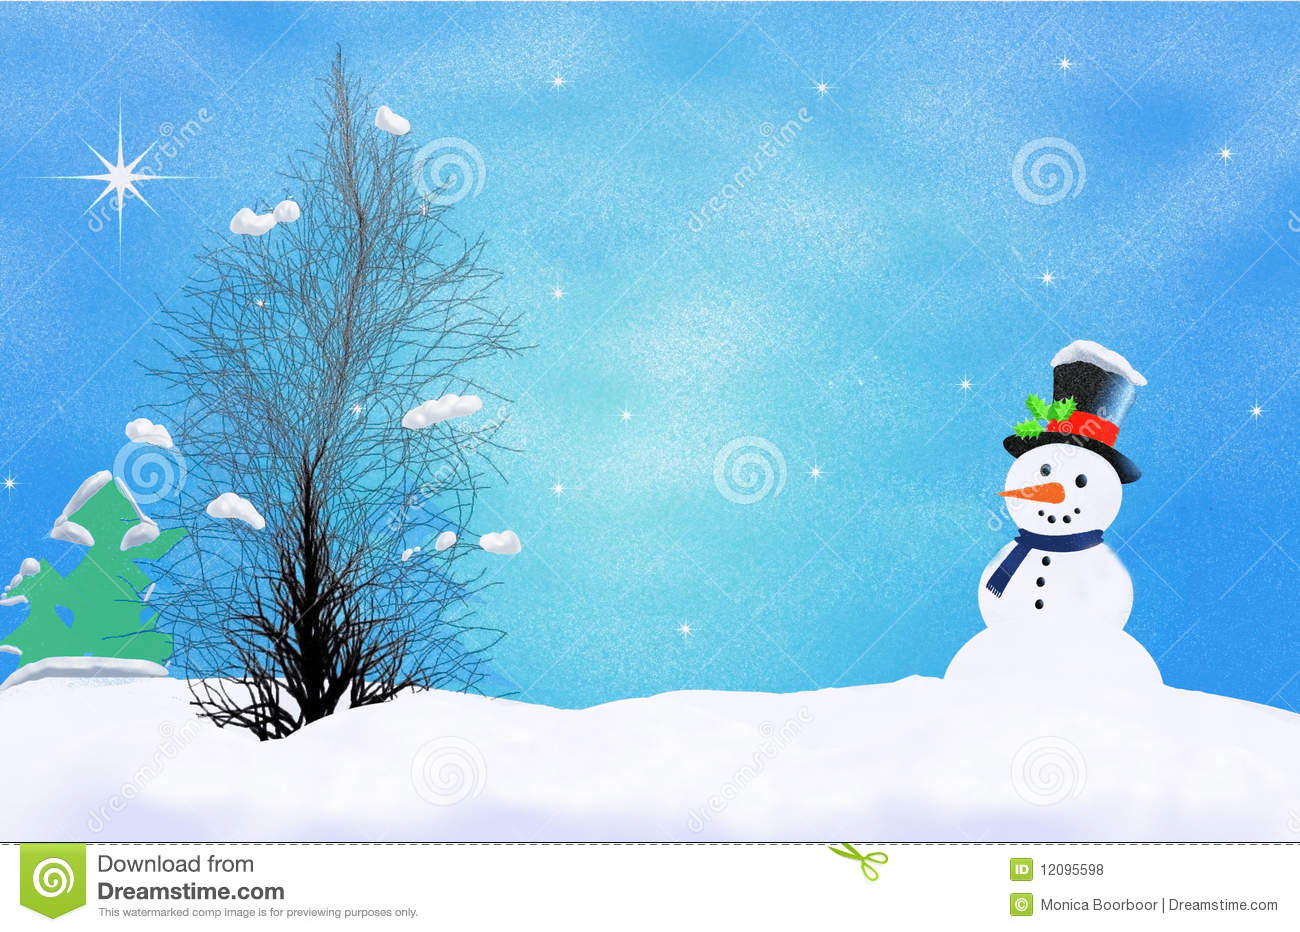 Christmas Wallpaper Snow Falling The Rest Of The Snow Clipart Clipground